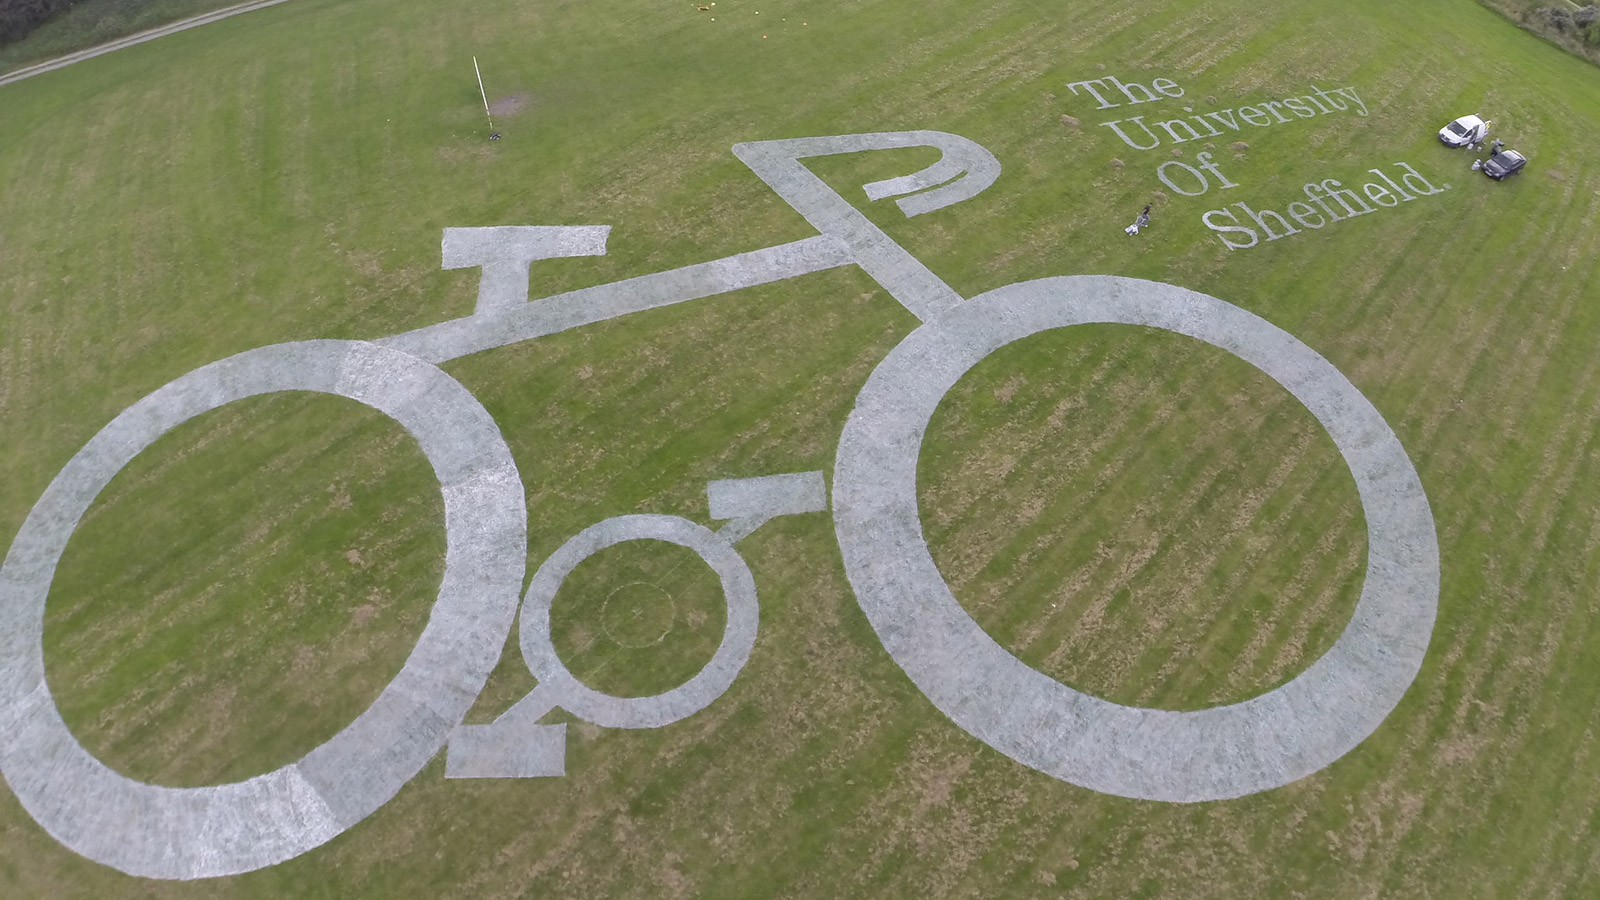 Sheffield University's huge bicycle artwork promoting the Krebs Cycle and science in sport